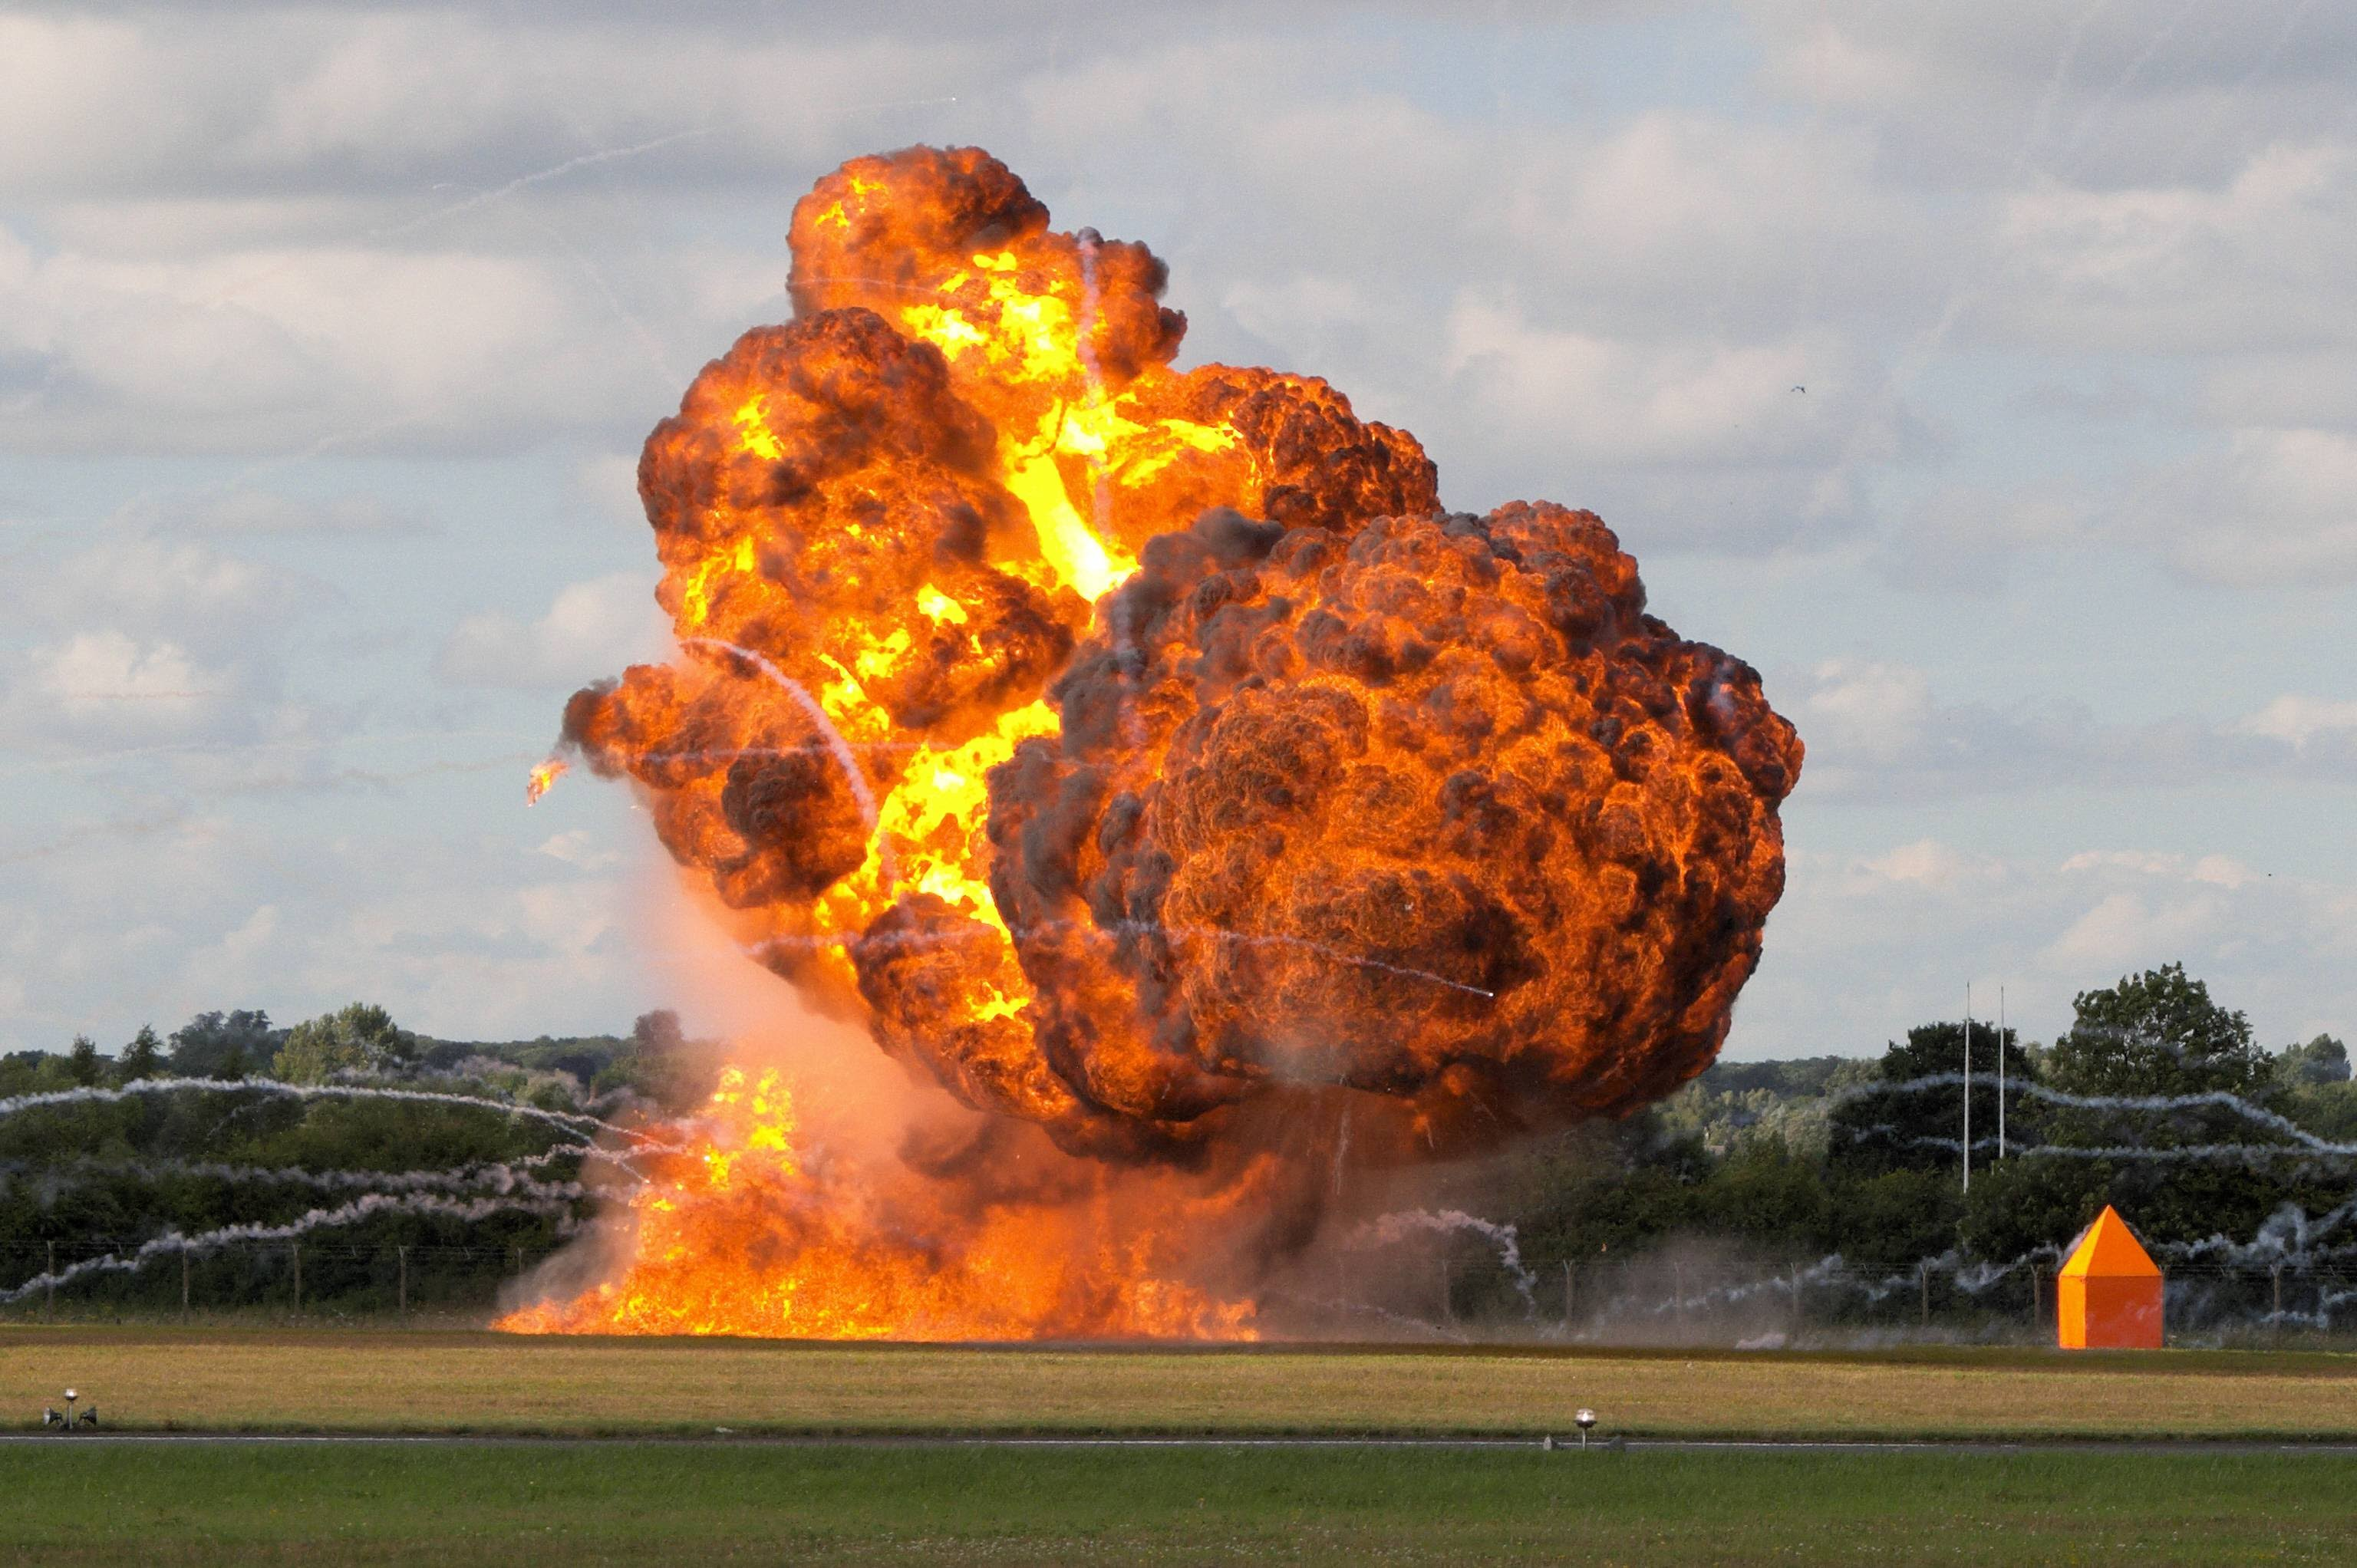 BIGGEST Explosion Compilation 2015 - BEST EXPLOSIONS EVER ! - YouTube